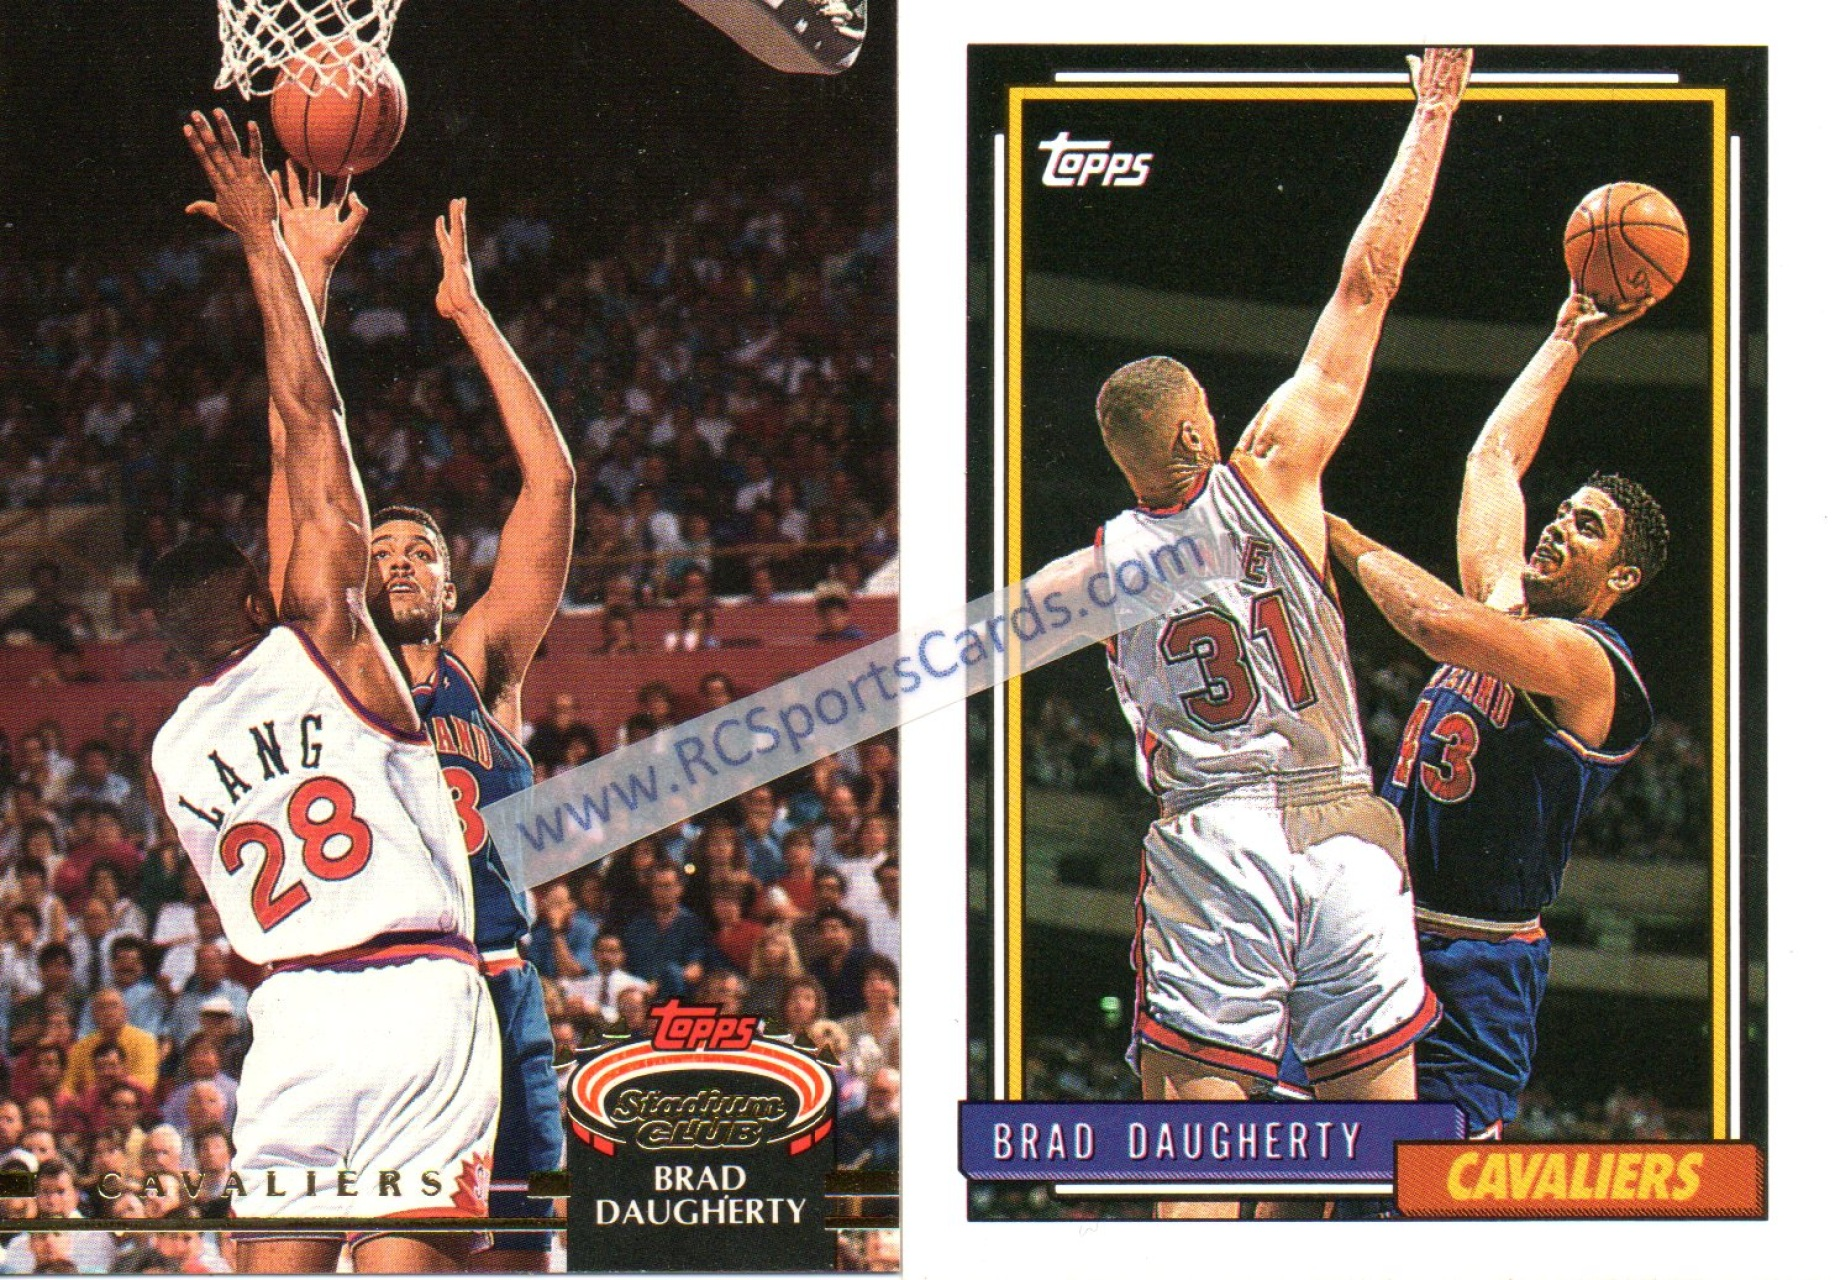 Selling 1992 1994 Cavaliers Basketball Trading Cards